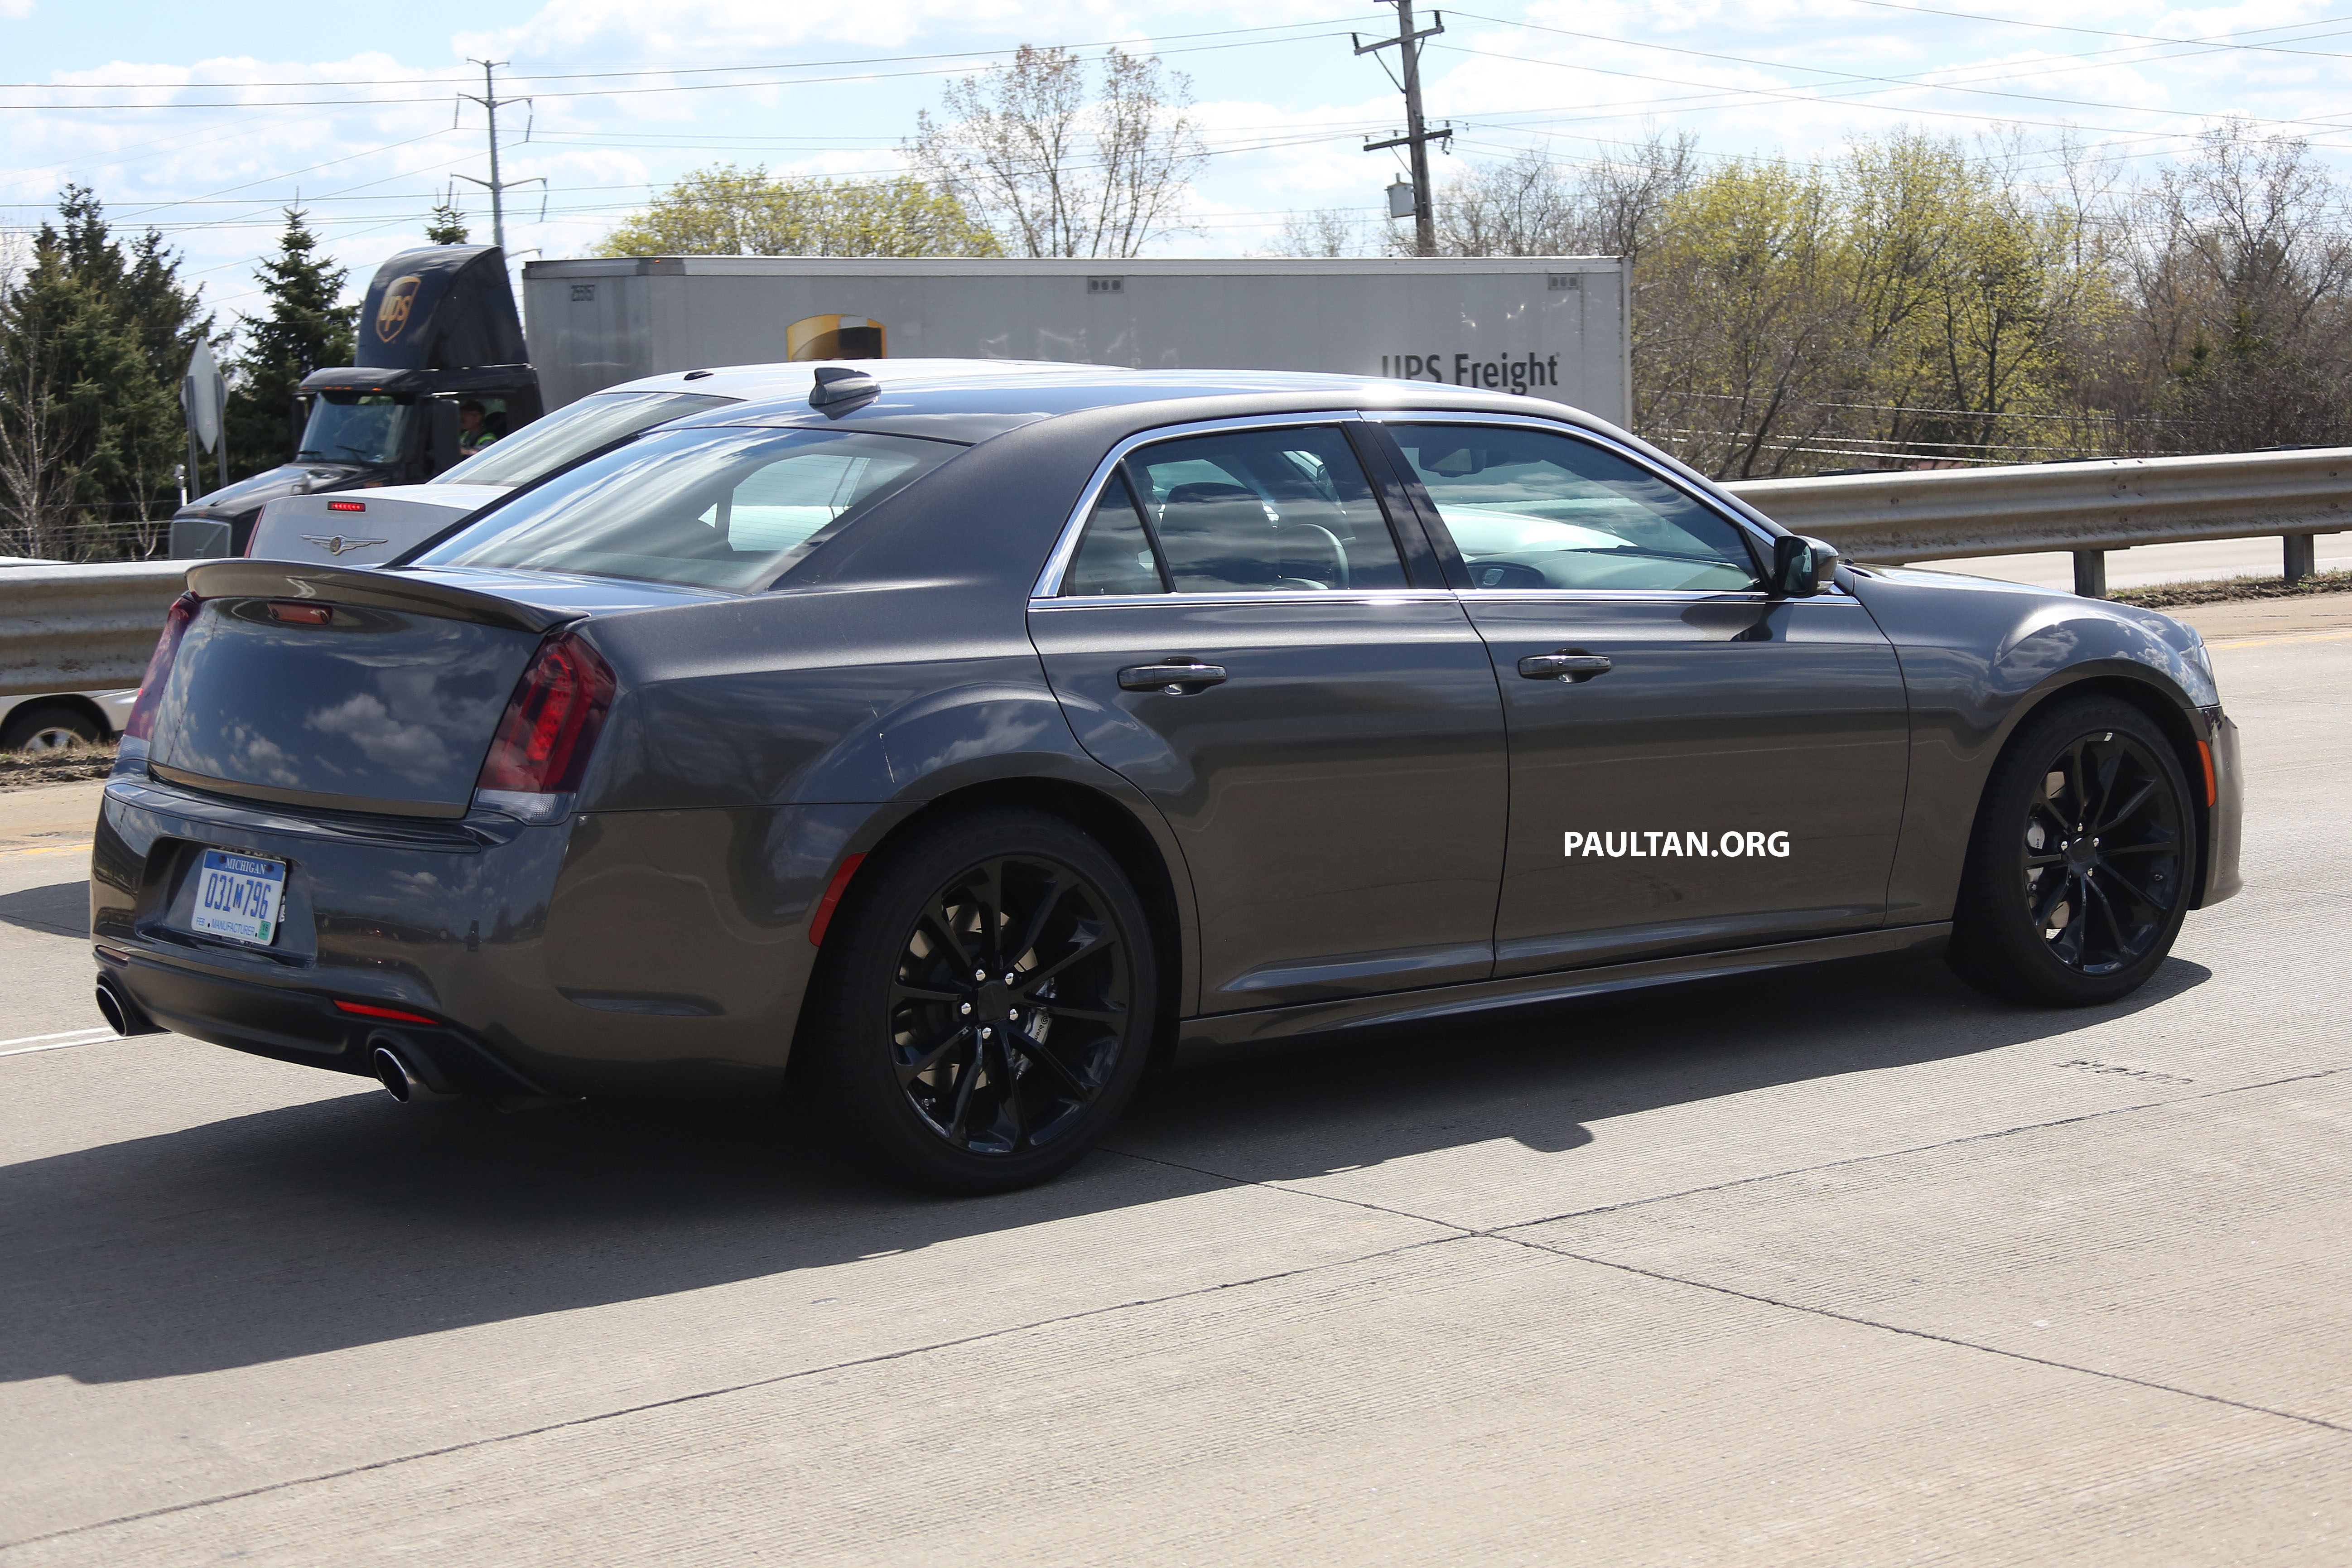 Chrysler 300srt >> SPYSHOTS: 2016 Chrysler 300 SRT spotted in Motown Paul Tan - Image 335670